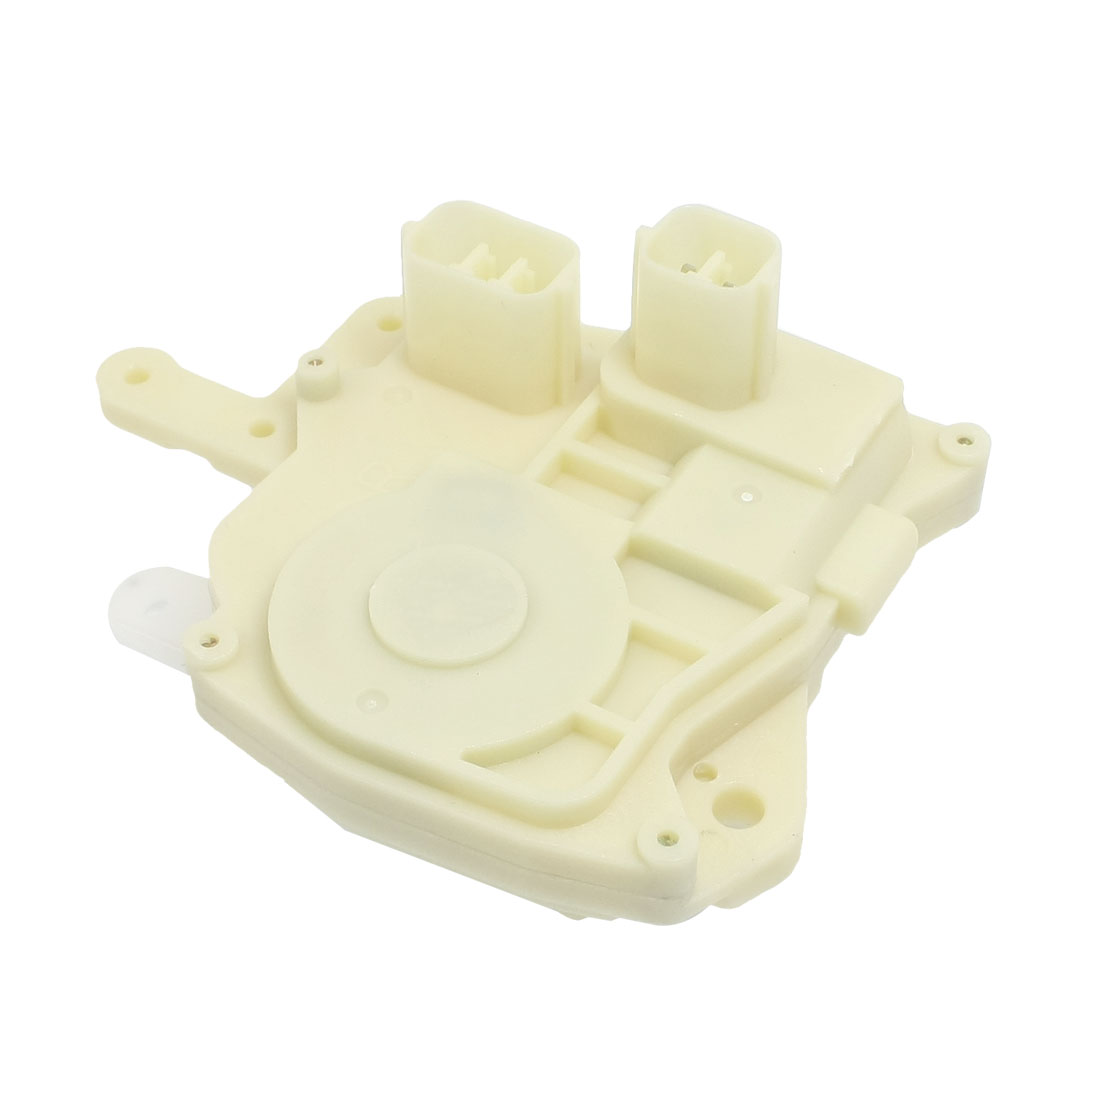 Car Plastic Right Rear Door Lock Actuator Assembly 72615-S84-A01